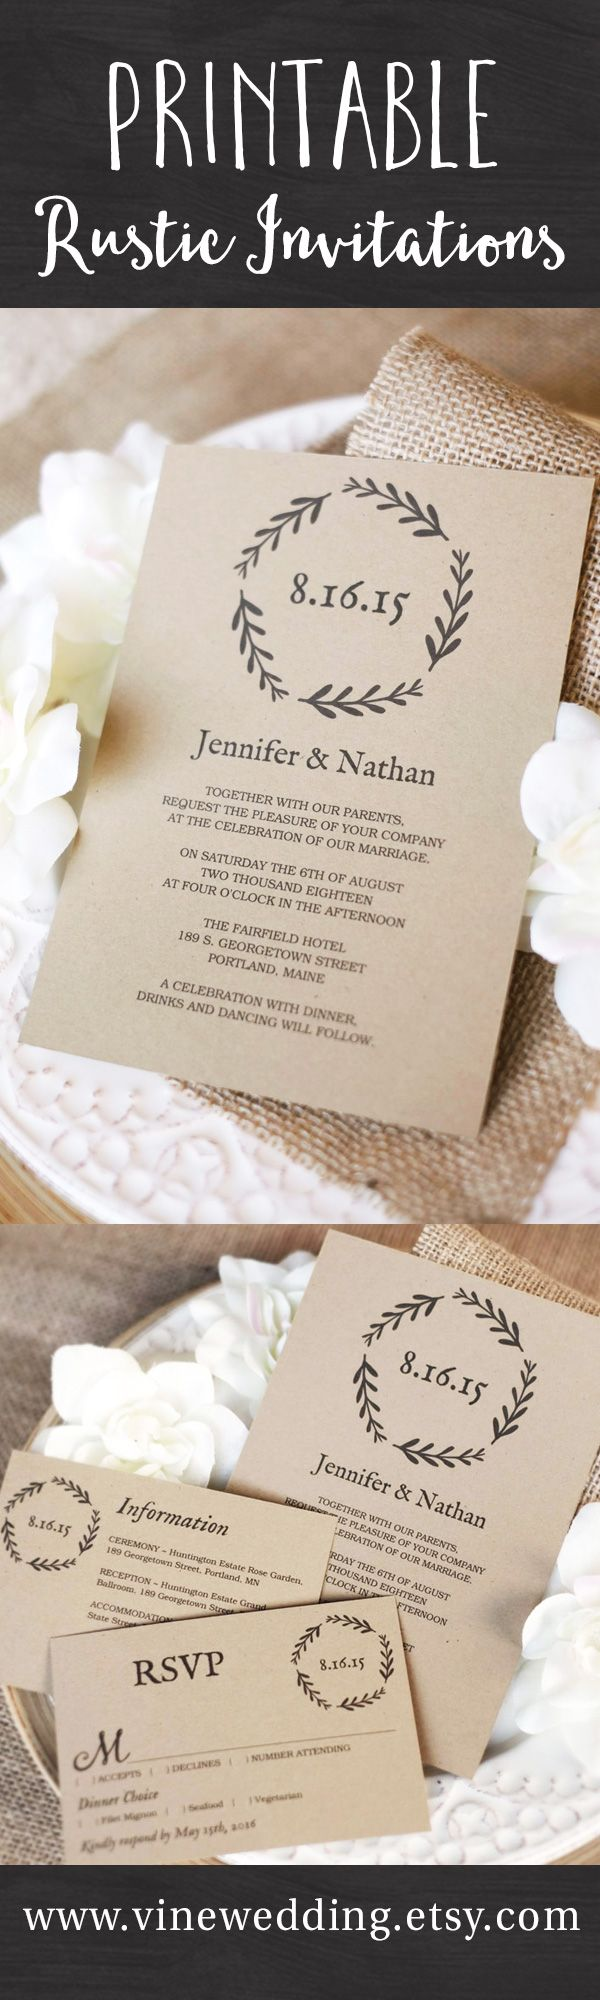 free wedding invitation templates country theme%0A Best     Invitation wording ideas on Pinterest   Wedding invitation  wording  Wording for wedding invitations and Wedding stationery etiquette